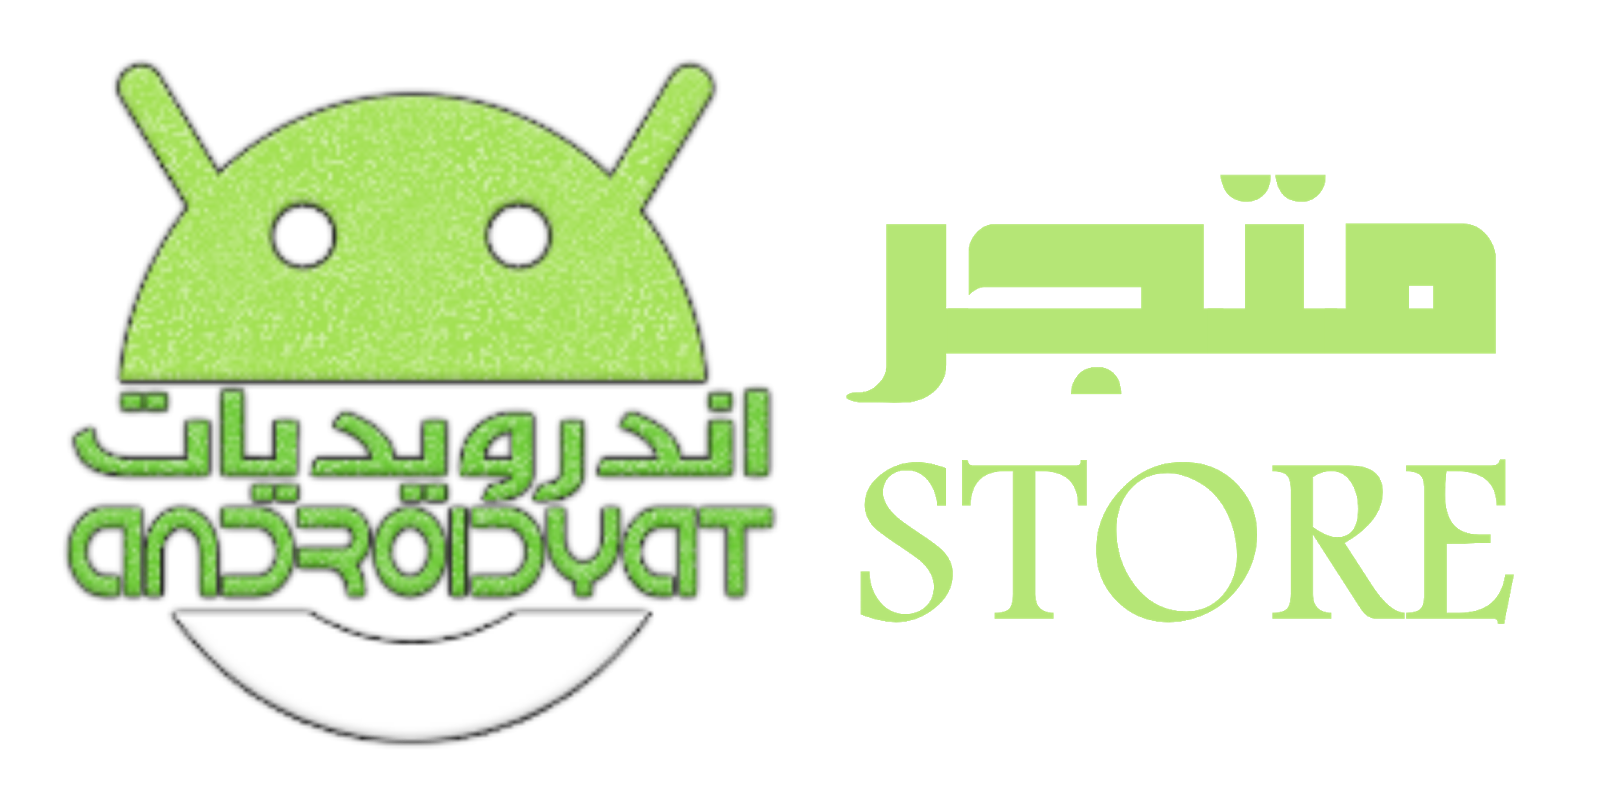 Androidyat Store